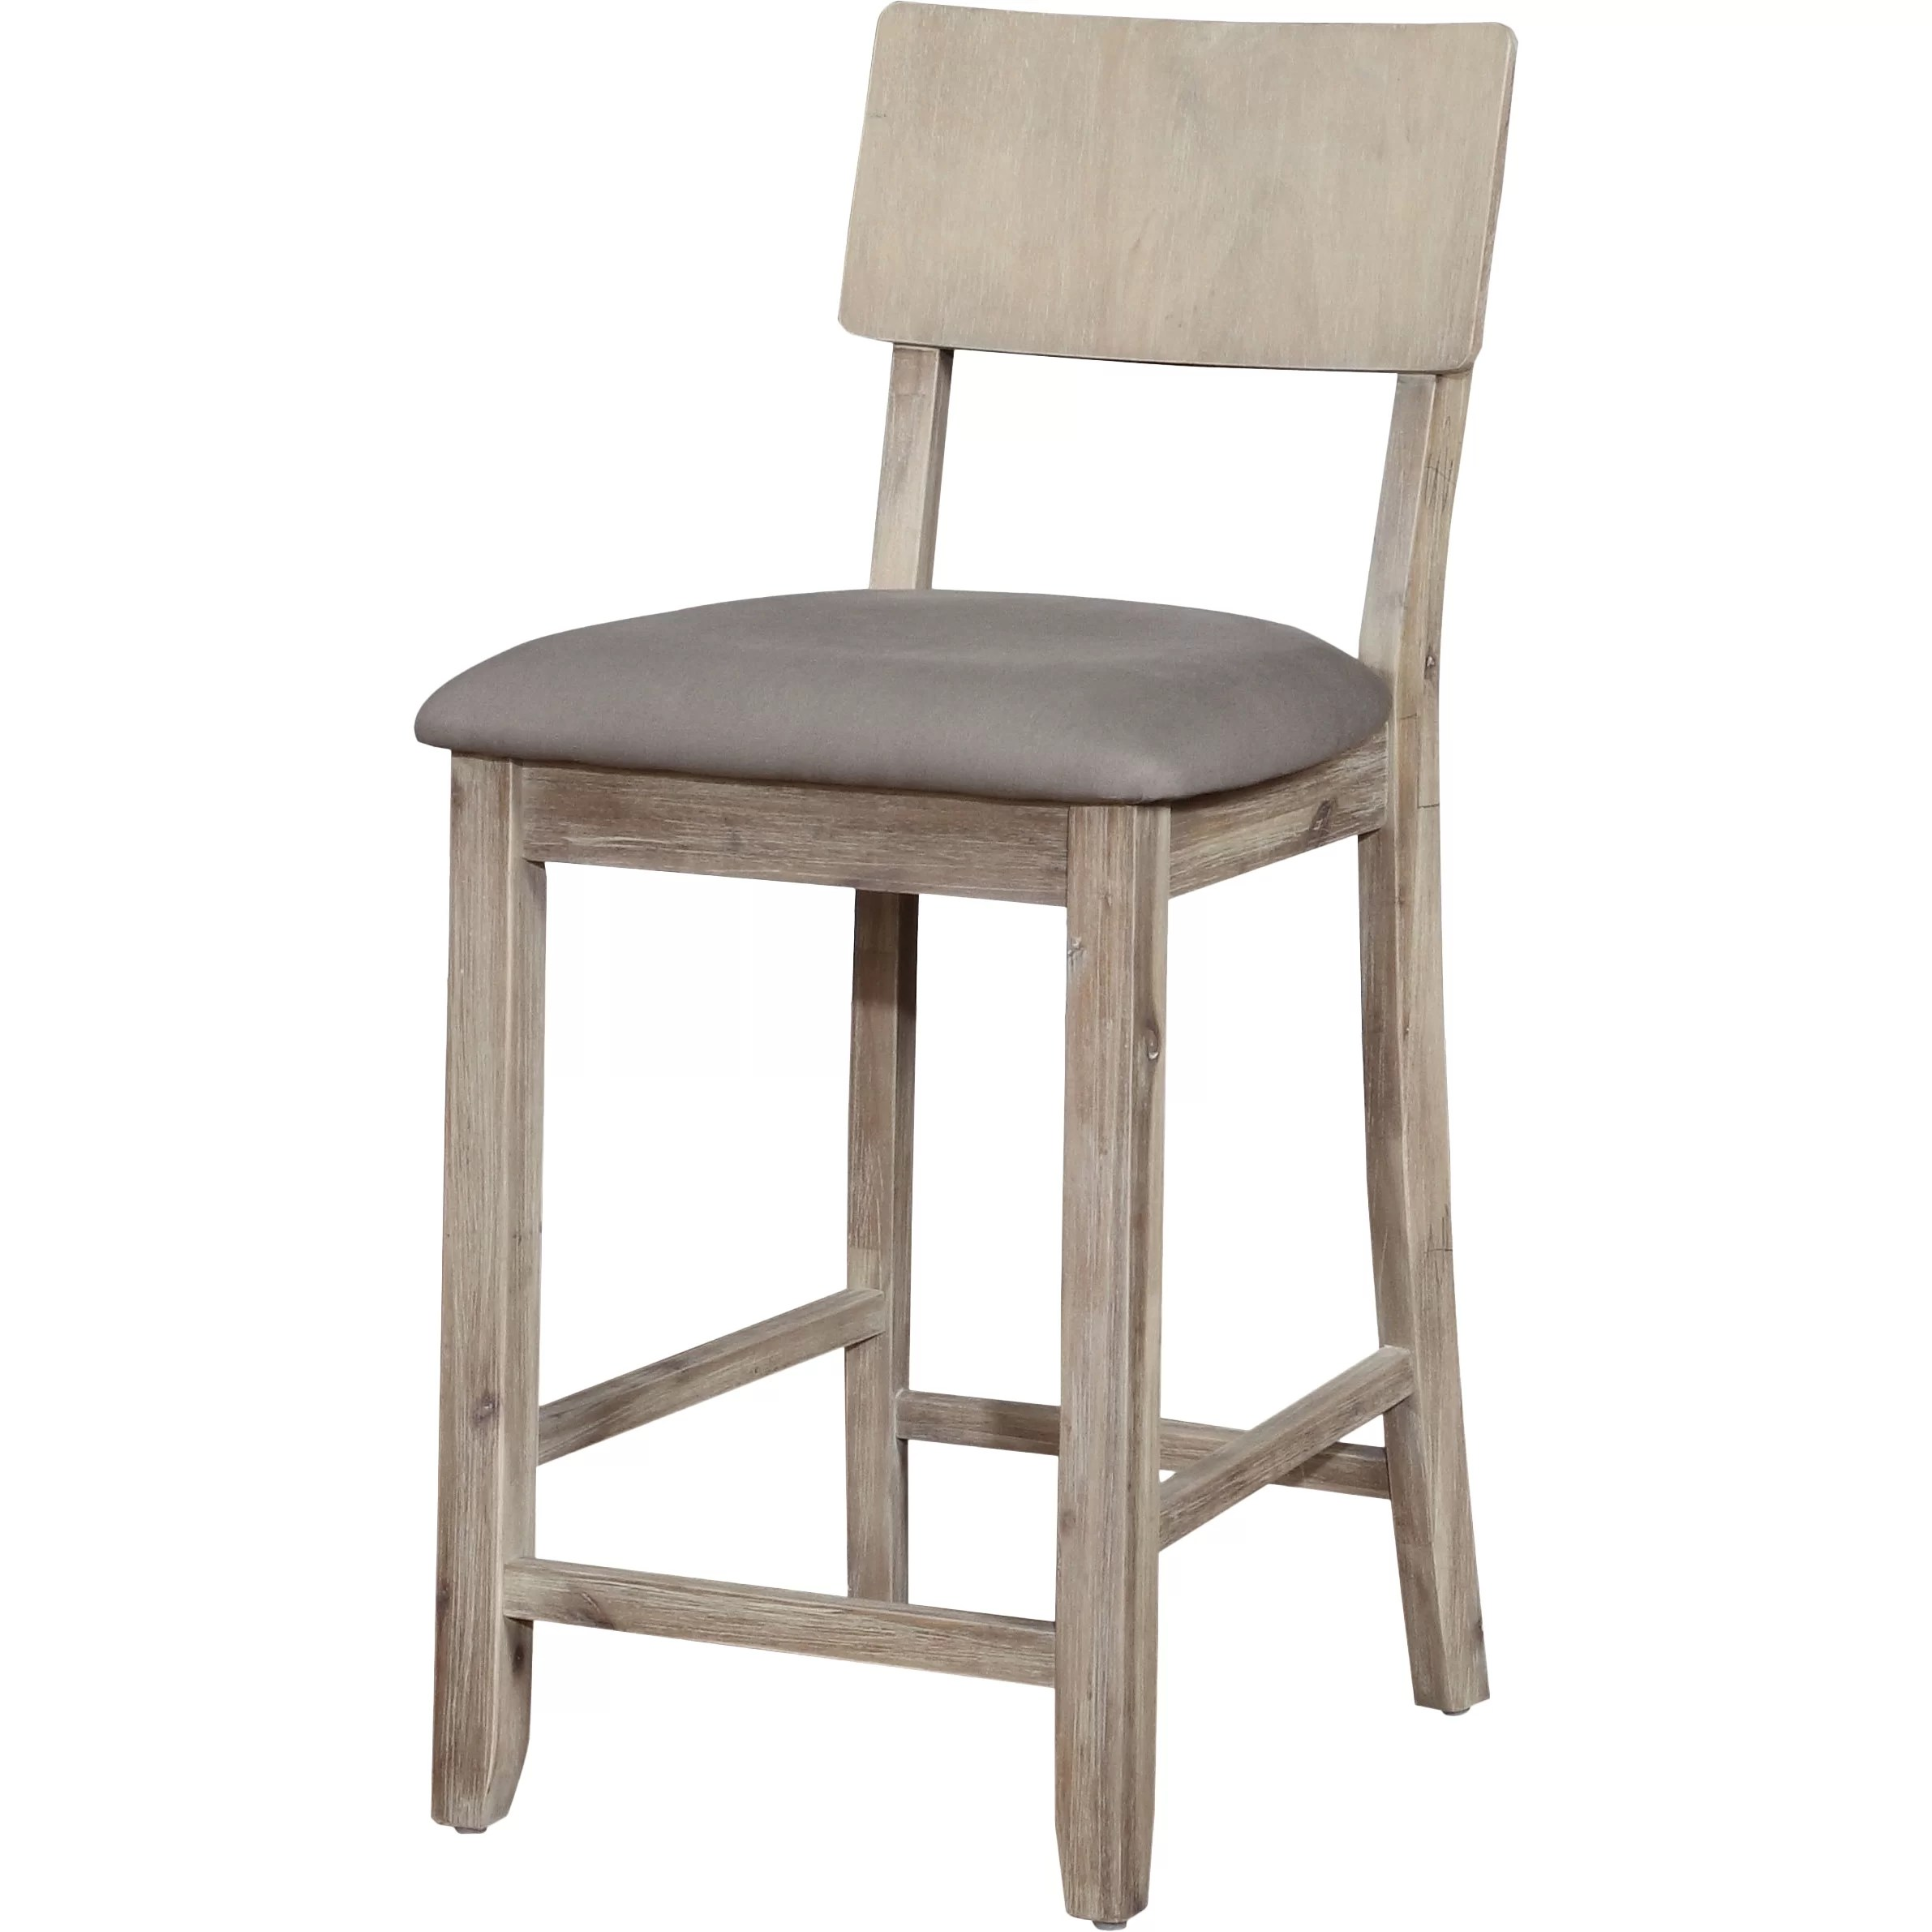 Bar And Stools For Home Beachcrest Home Bonifay 24 Quot Bar Stool And Reviews Wayfair